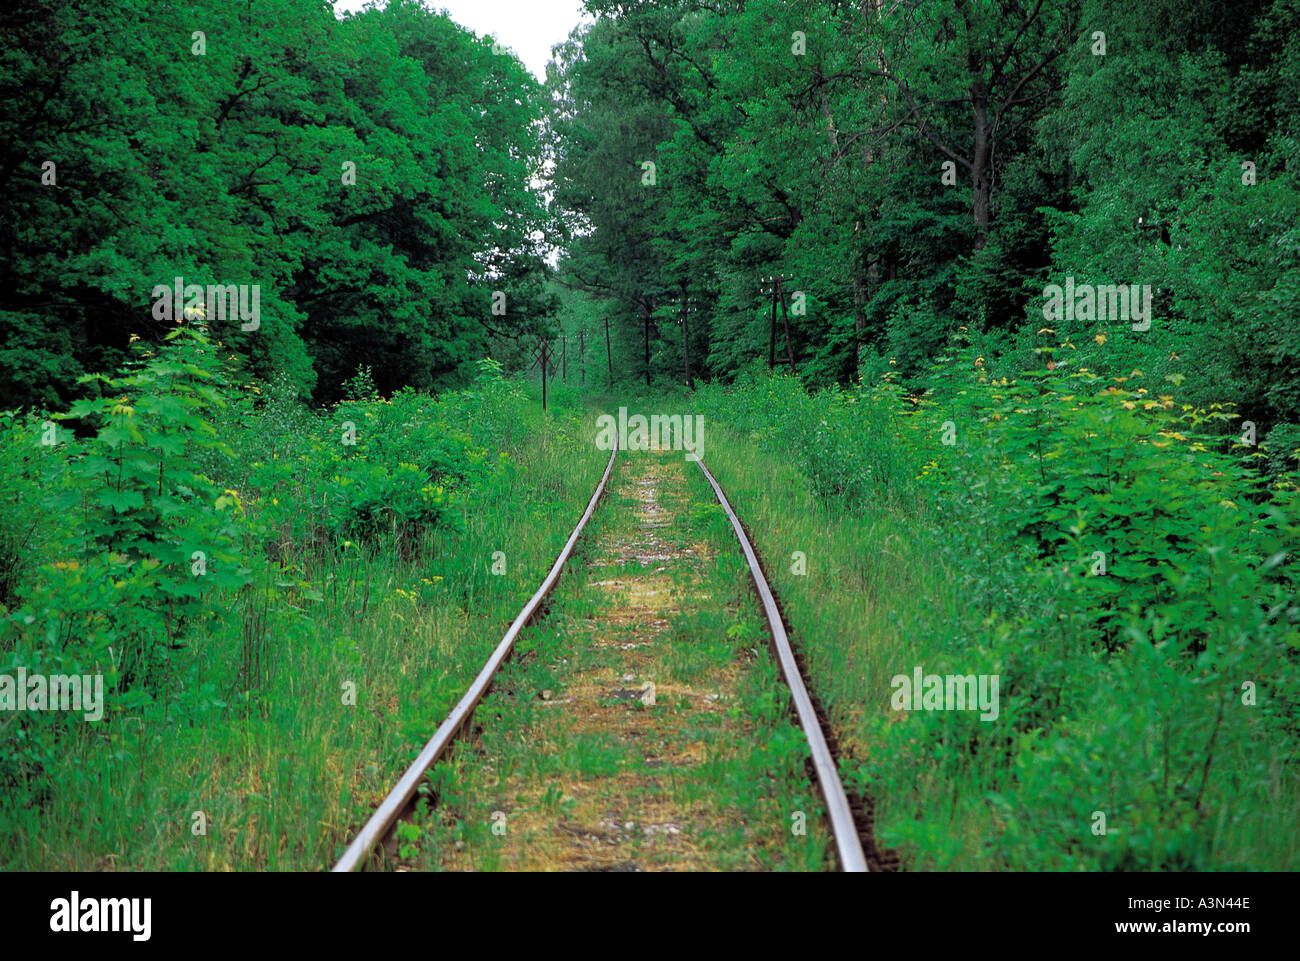 Trees Traintracks Forests - Stock Image